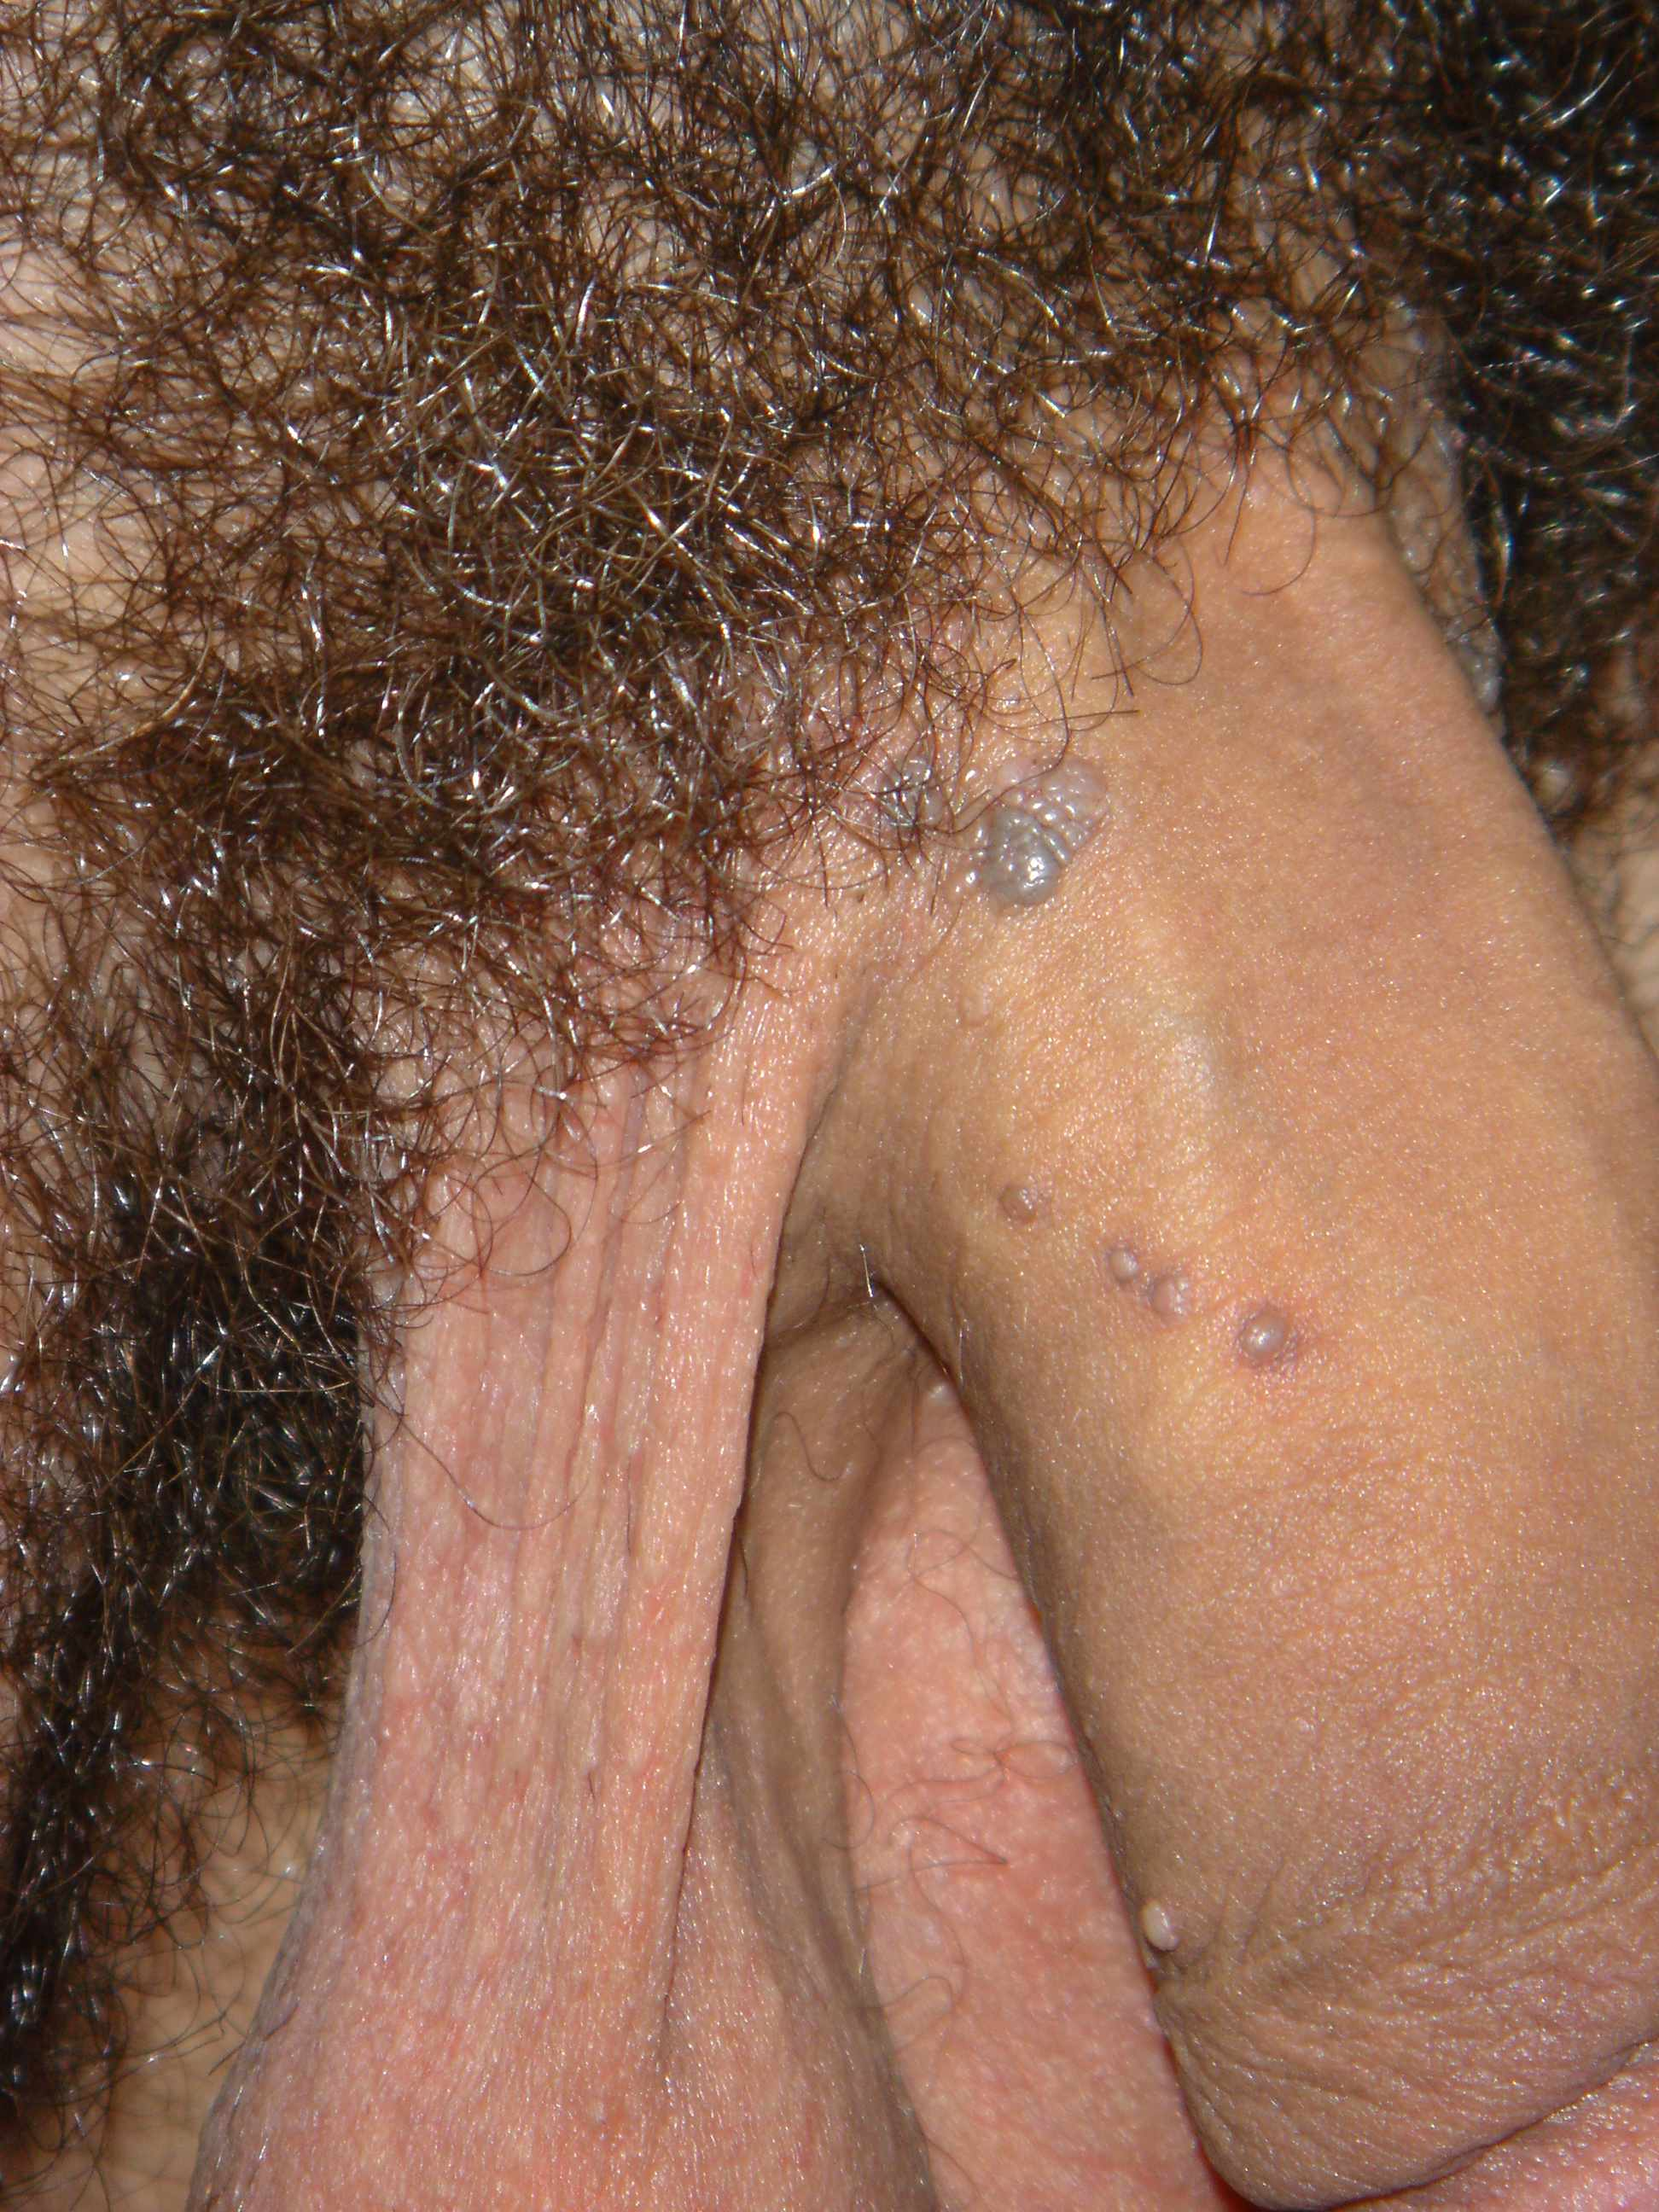 Cutaneous Penile Lesions - Genitourinary Disorders - Merck ...